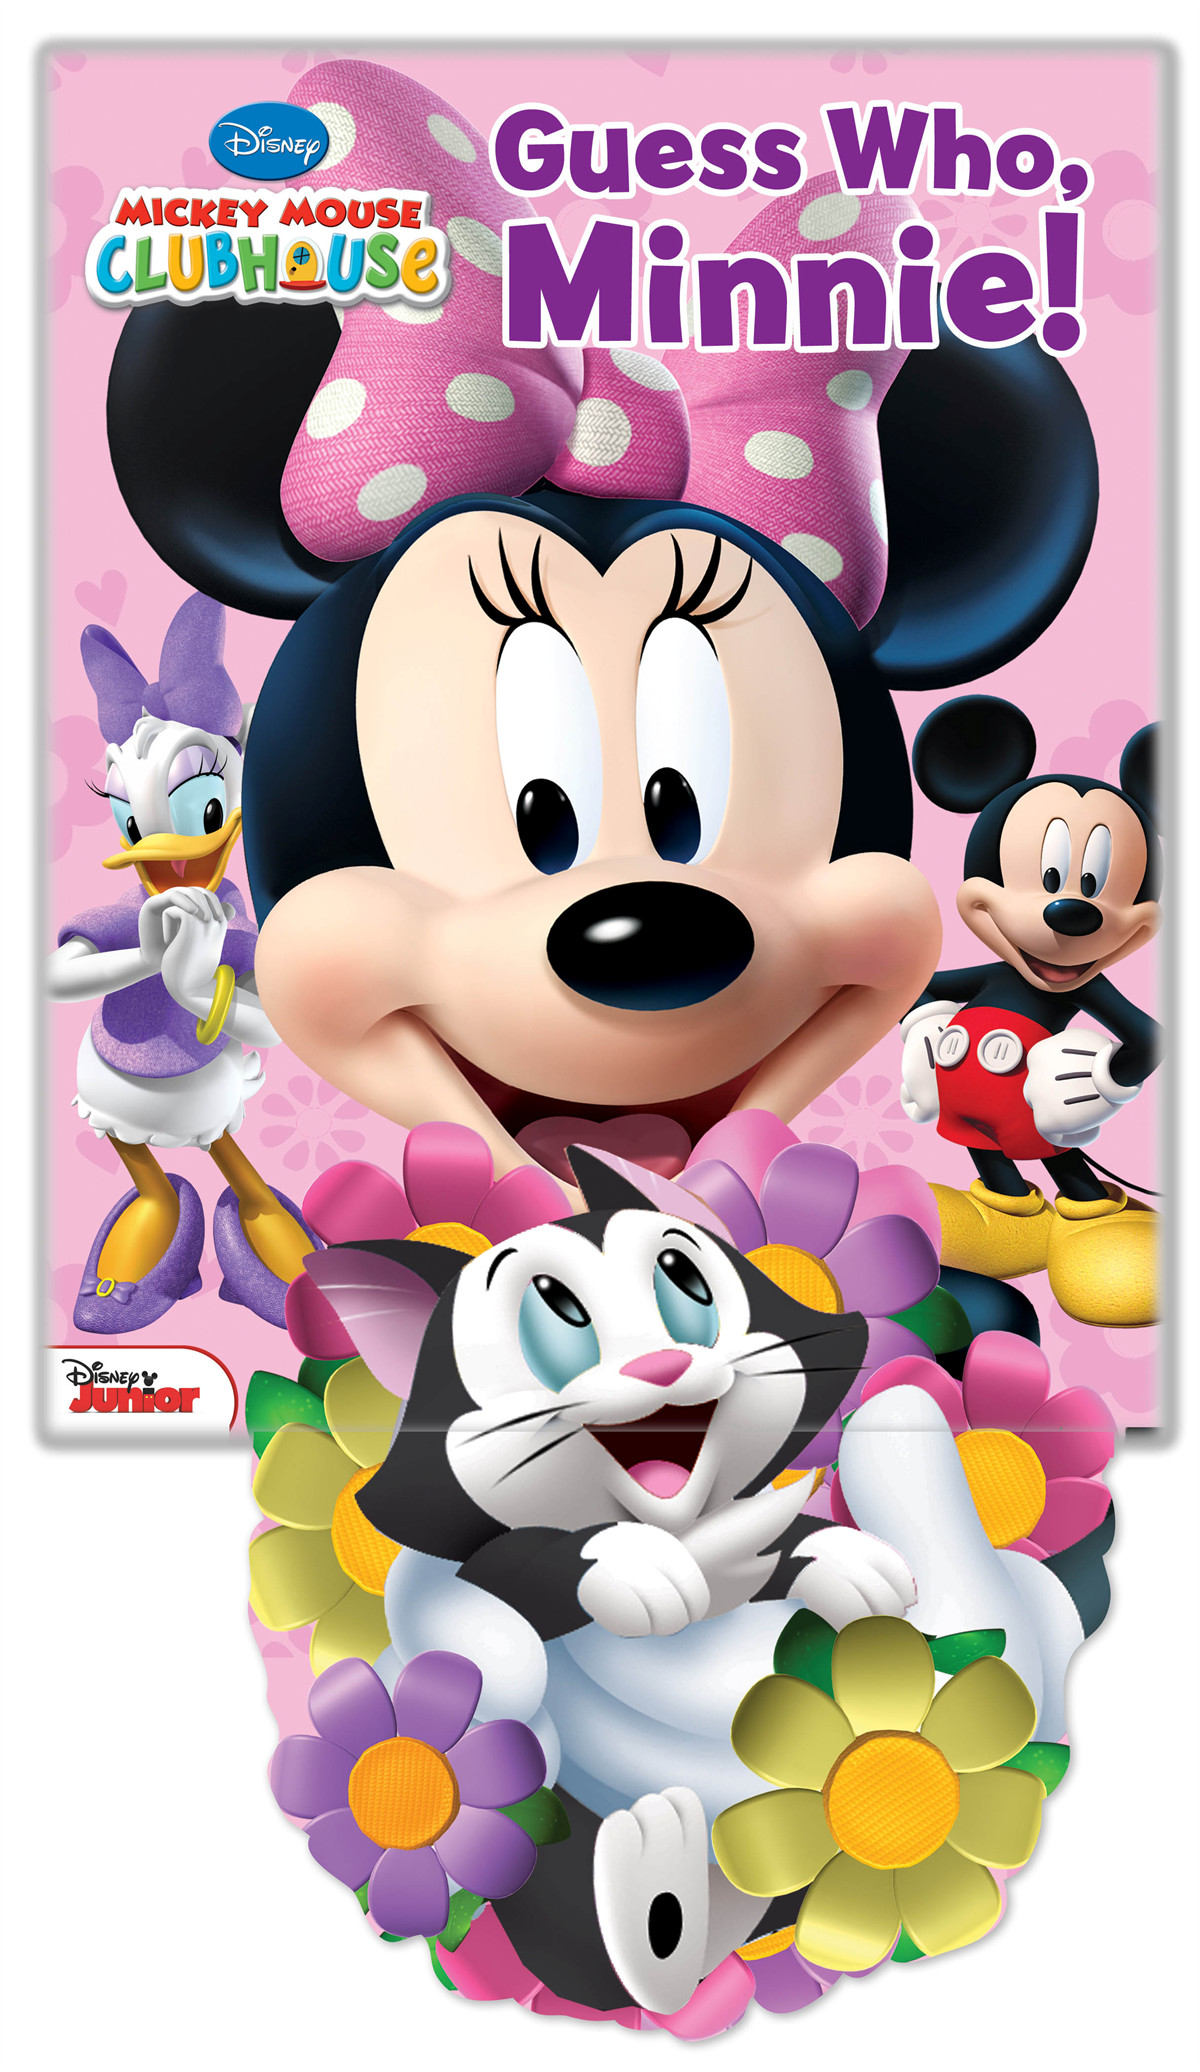 Disney-guess-who-minnie!-9780794425555.in01